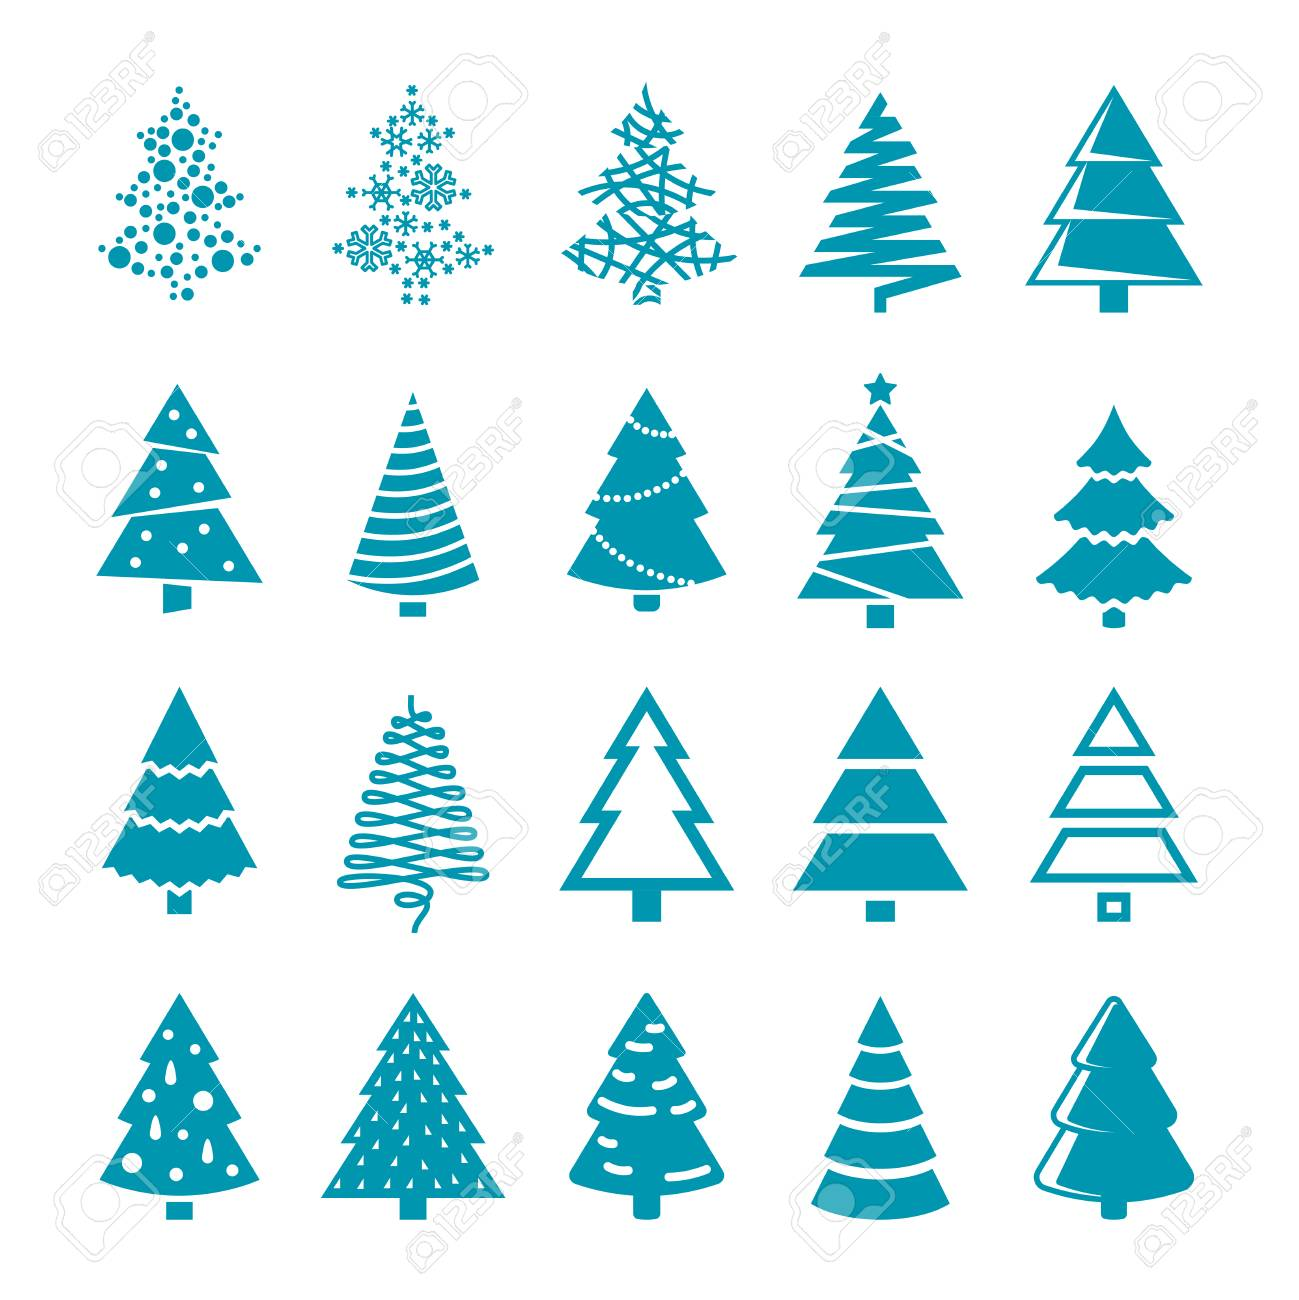 Silhouette Christmas Trees Vector Stylized Simple Symbols Royalty